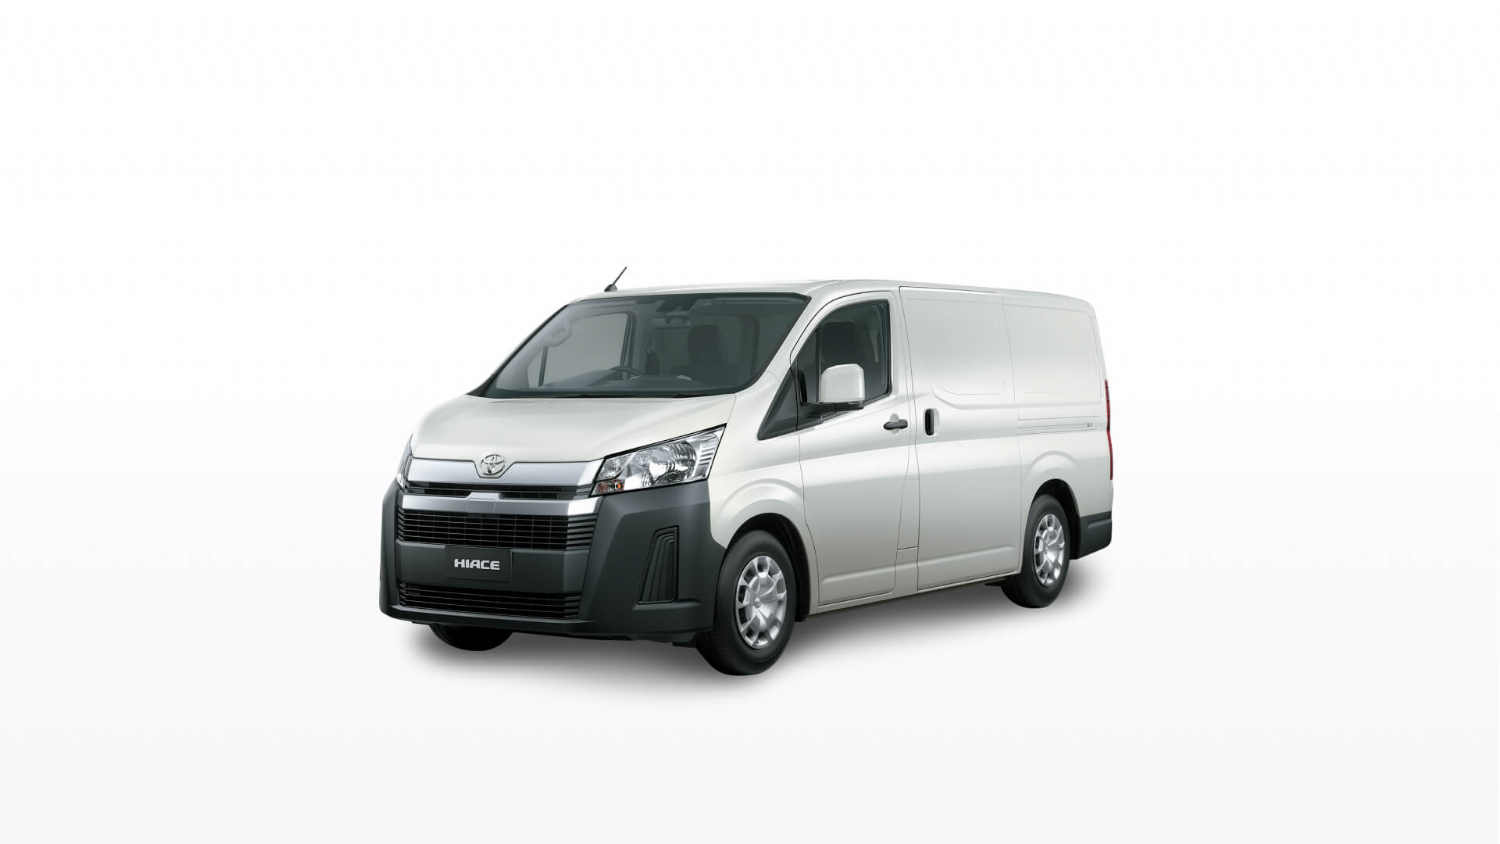 New-HiAce-Banner image